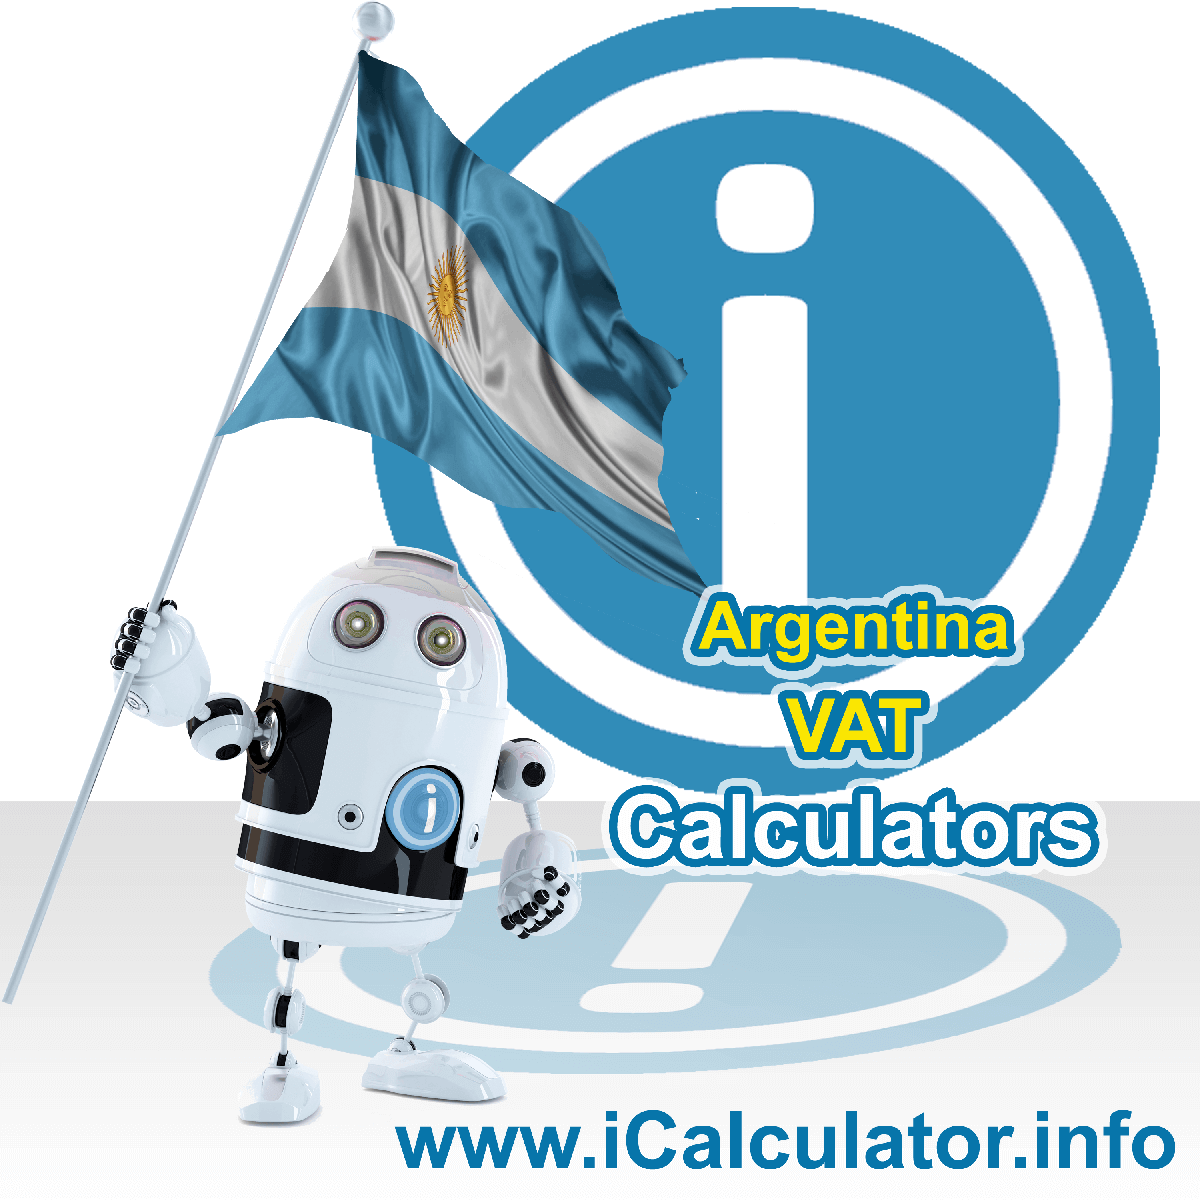 Argentina VAT Calculator. This image shows the Argentina flag and information relating to the VAT formula used for calculating Value Added Tax in Argentina using the Argentina VAT Calculator in 2020